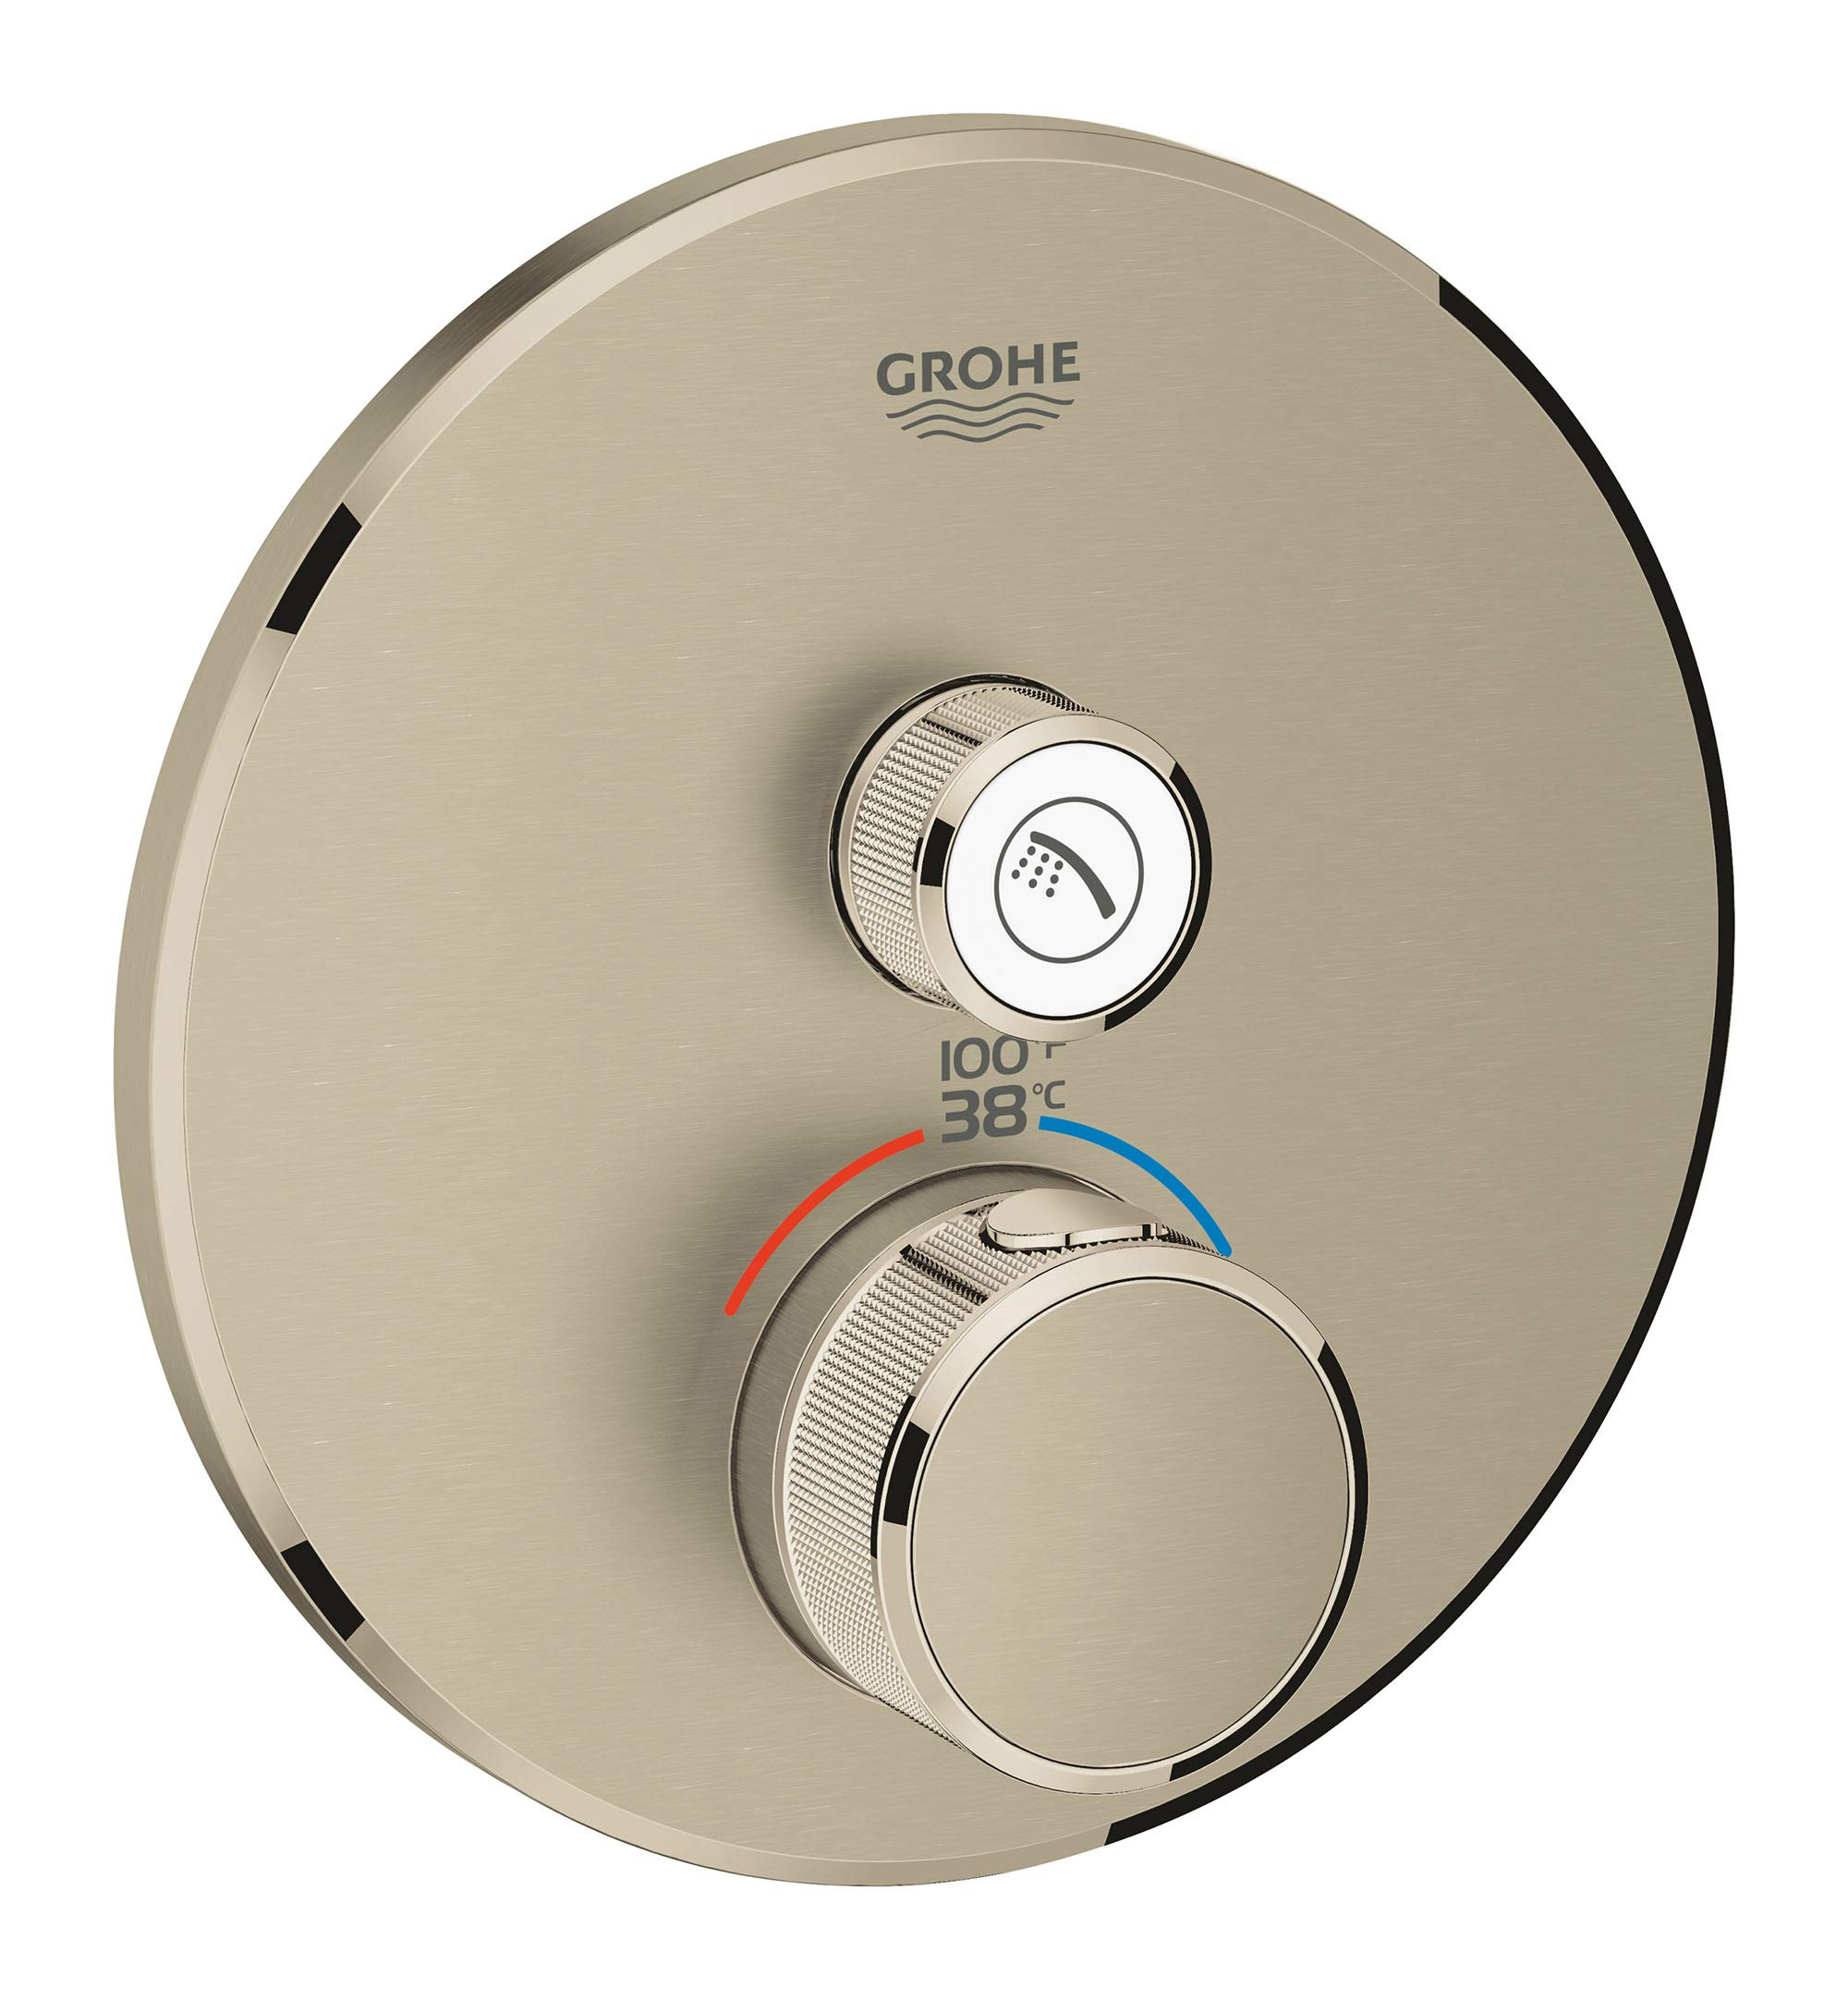 GROHE 29136EN0 Grohtherm Smartcontrol Single Function Thermostatic Trim with Control Module, Brushed Nickel